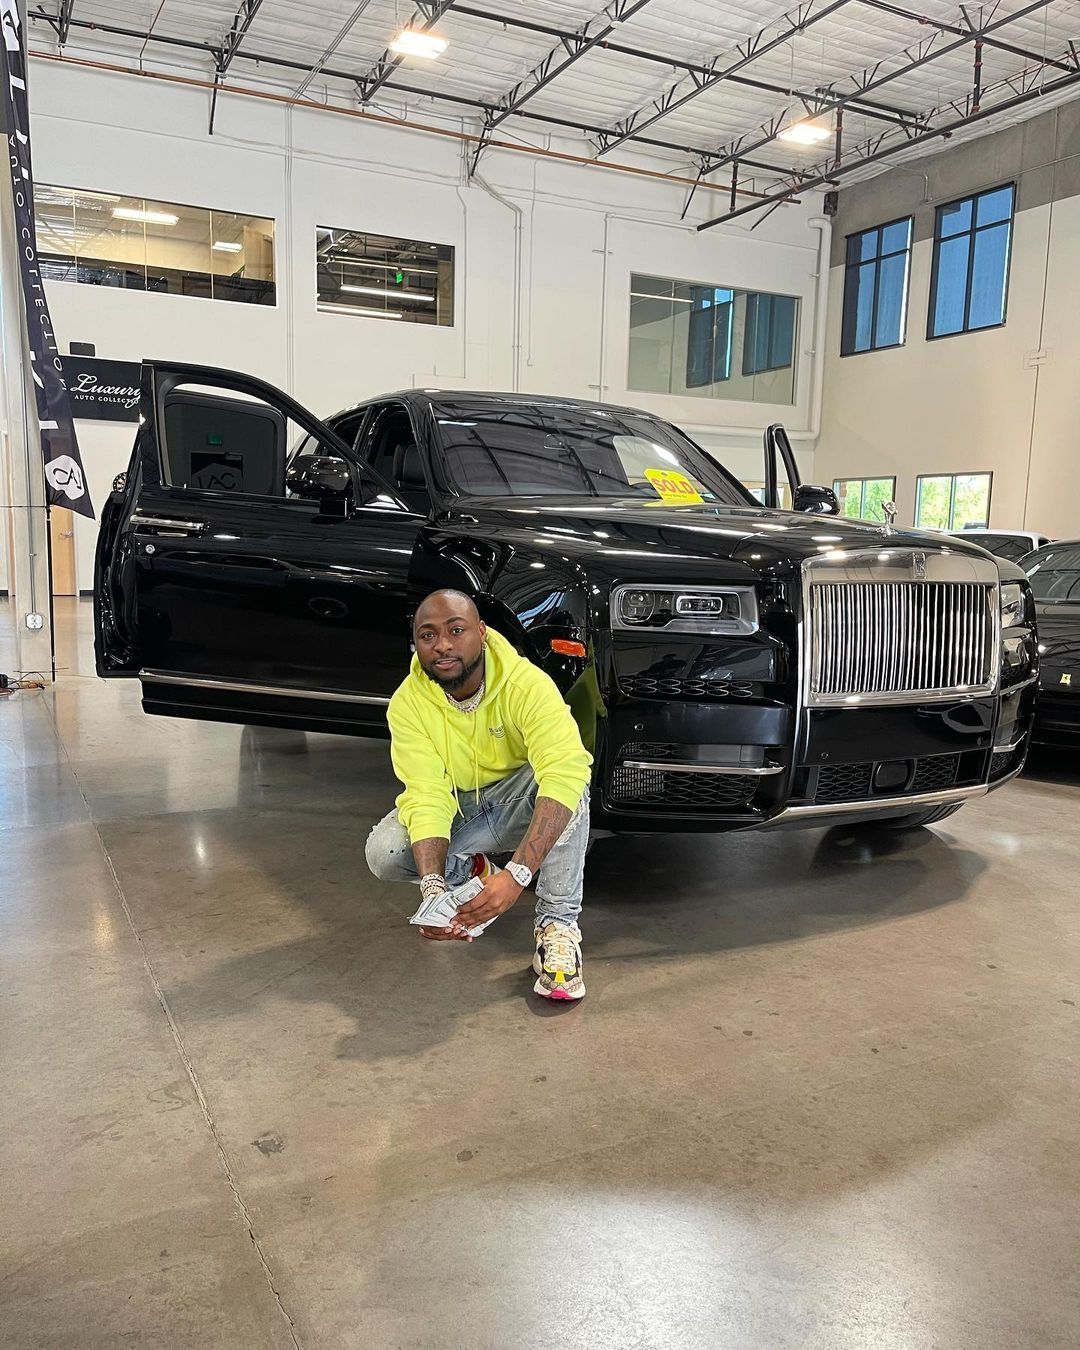 Davido's 2021 Rolls Royce Cullinan Specifications and price in Nigeria